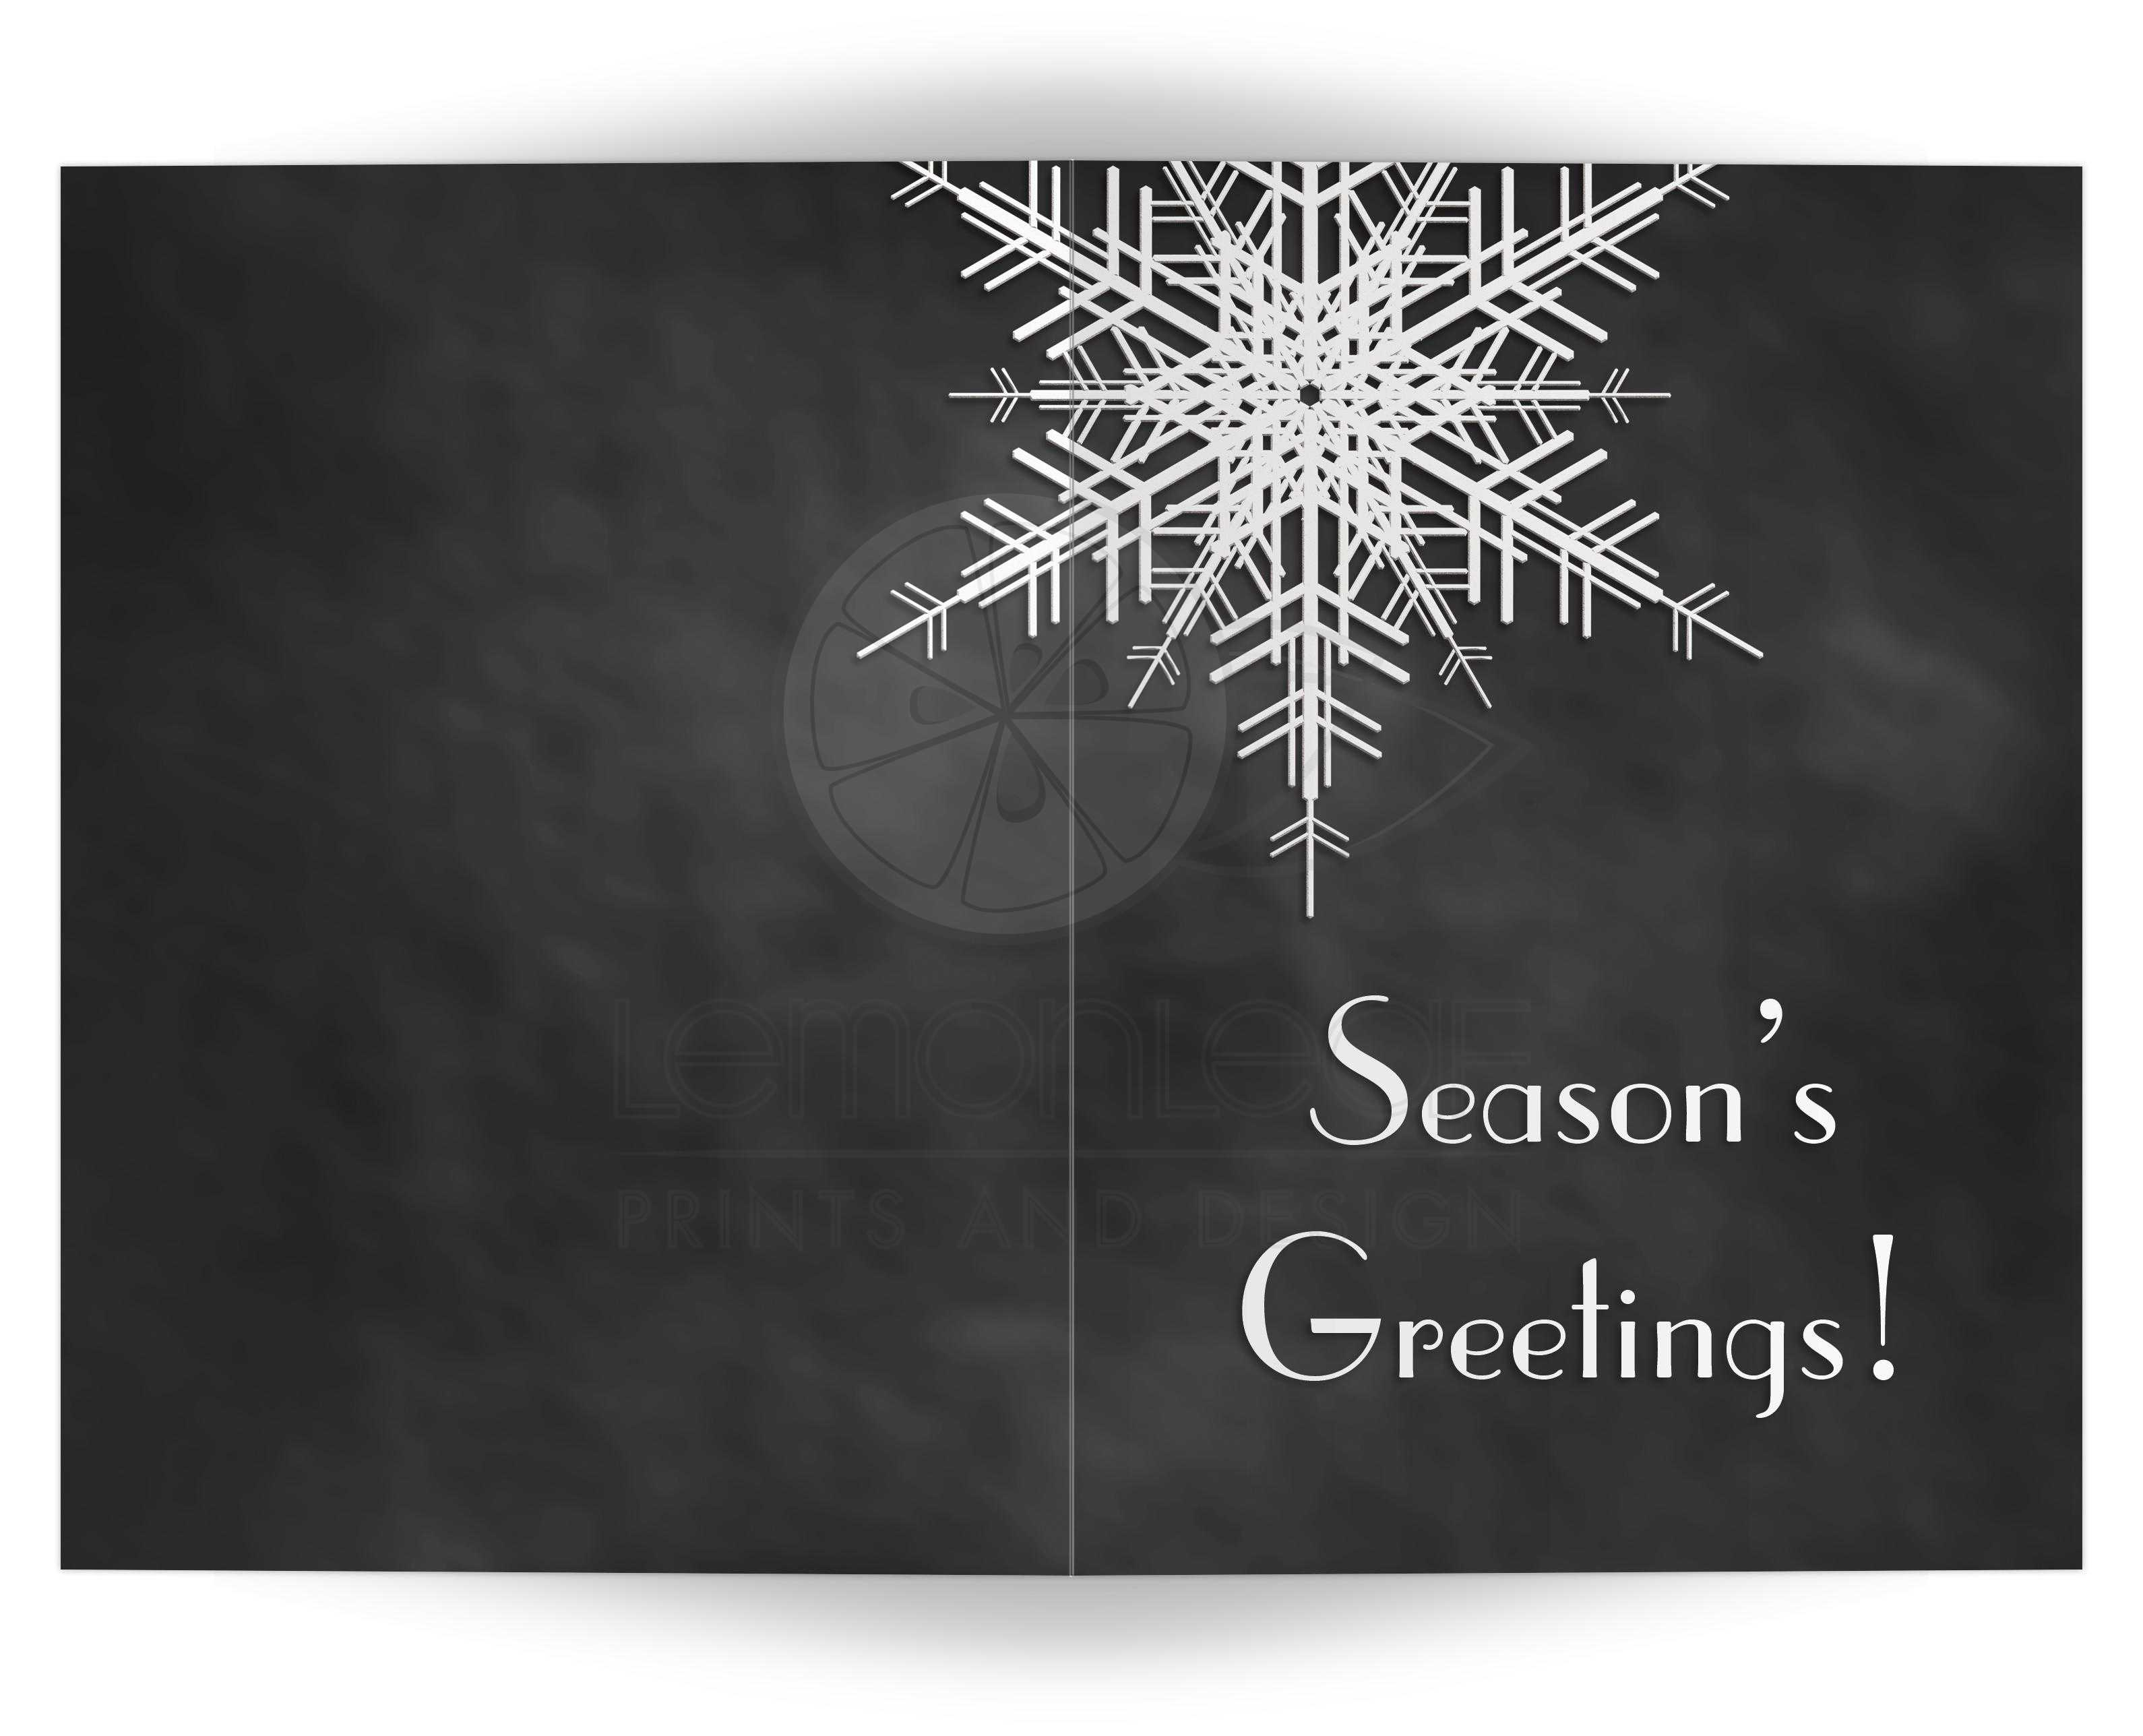 Holiday card seasons greetings snowflake on chalkboard 5x7 a large snowflake decorates this non denominational faux chalkboard holiday card m4hsunfo